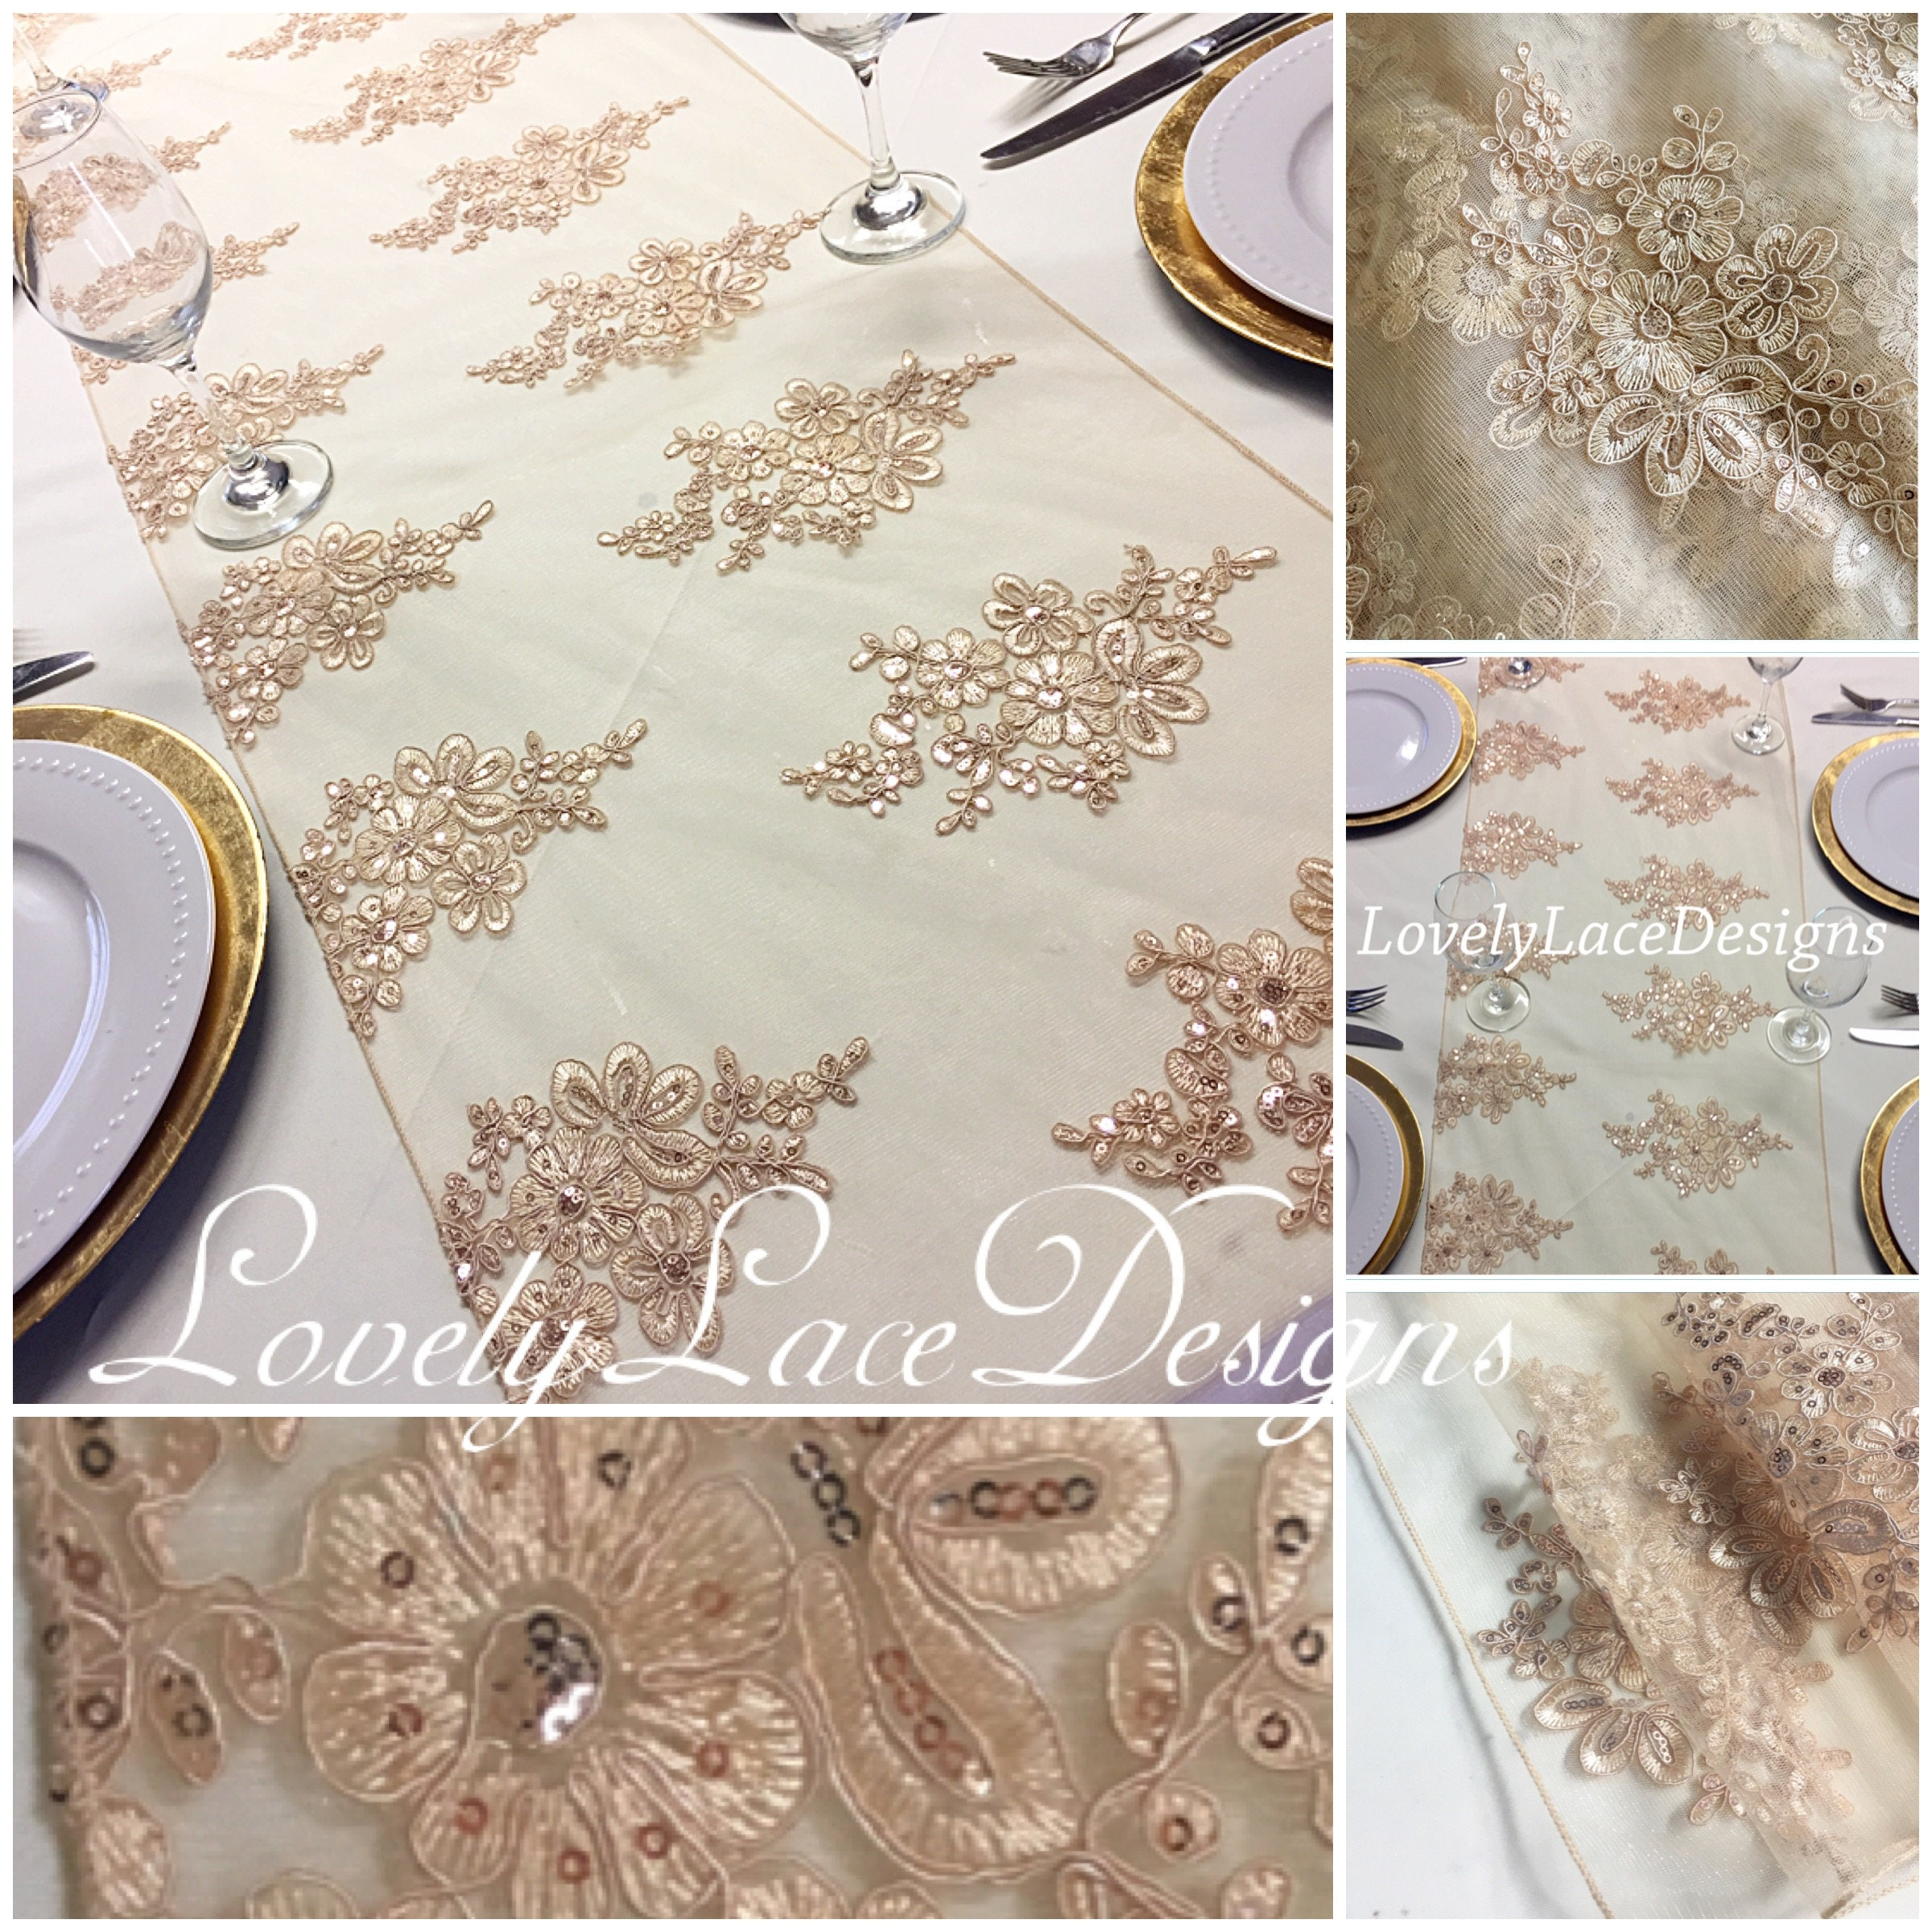 8.5ft/Gold/Champagne Lace Table Runner/15 wide x 90 long/Wedding ...